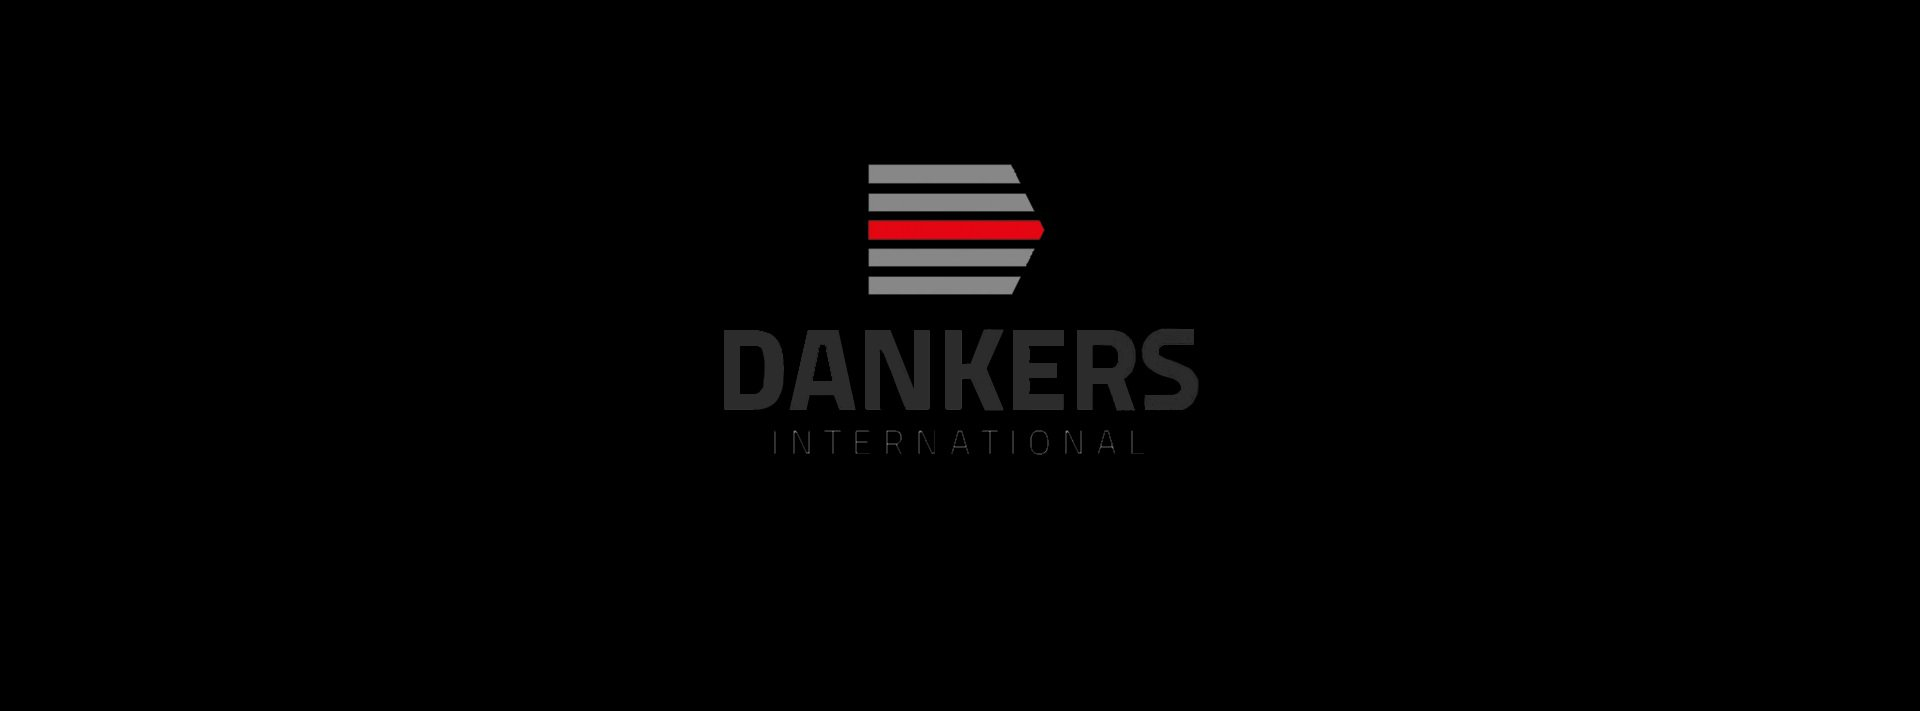 DANKERS INTERNATIONAL B.V. logo